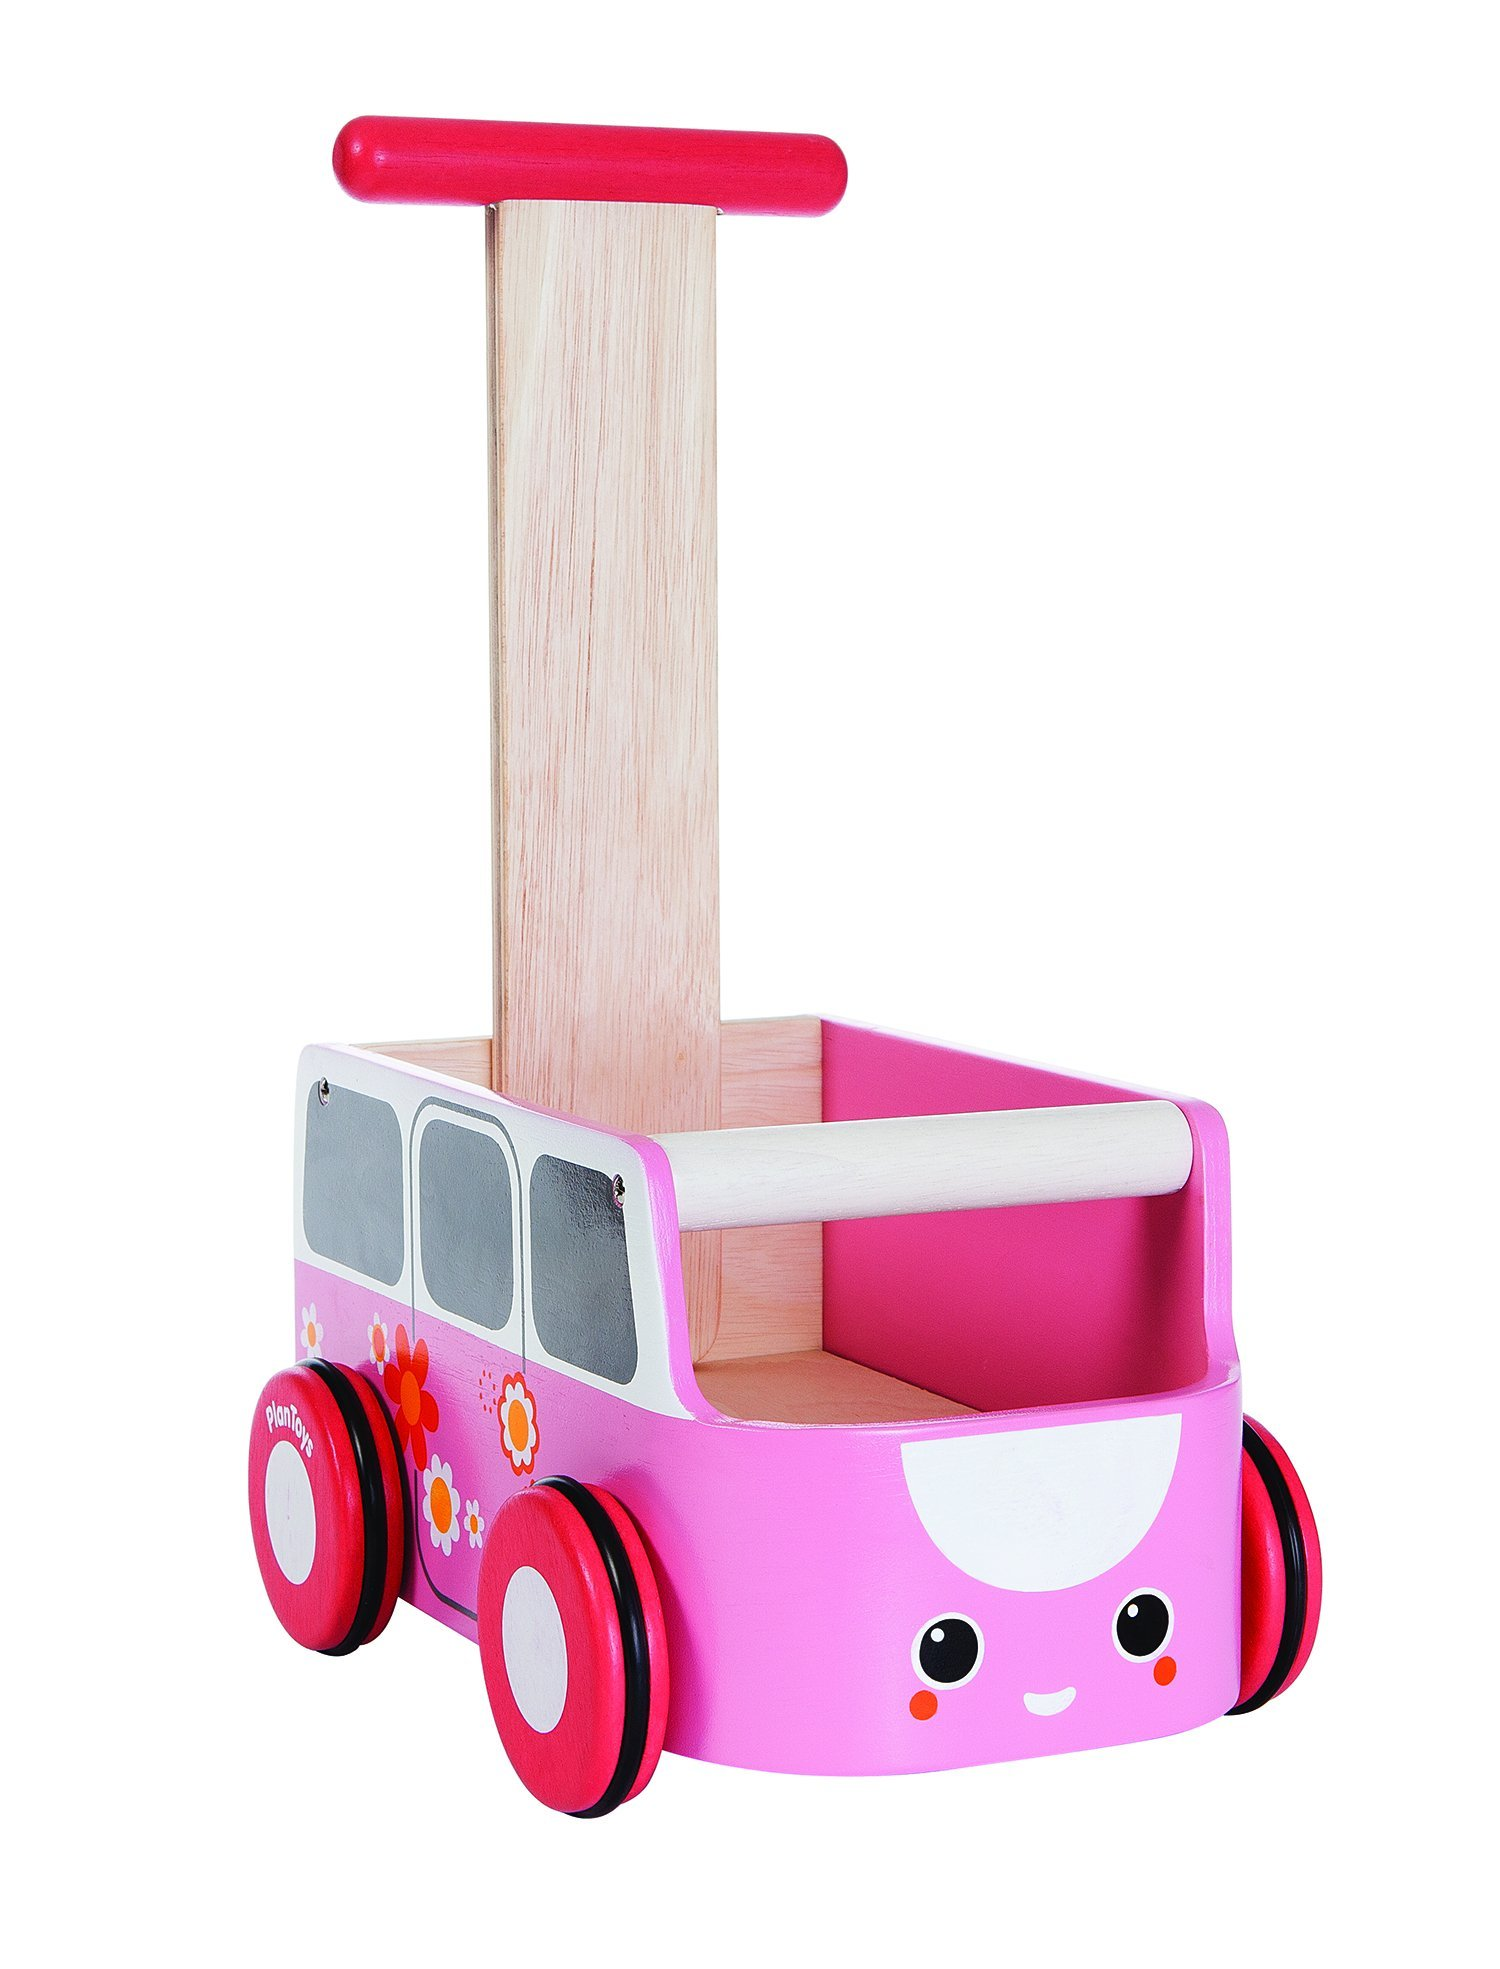 PlanToys Van Walker, Pink